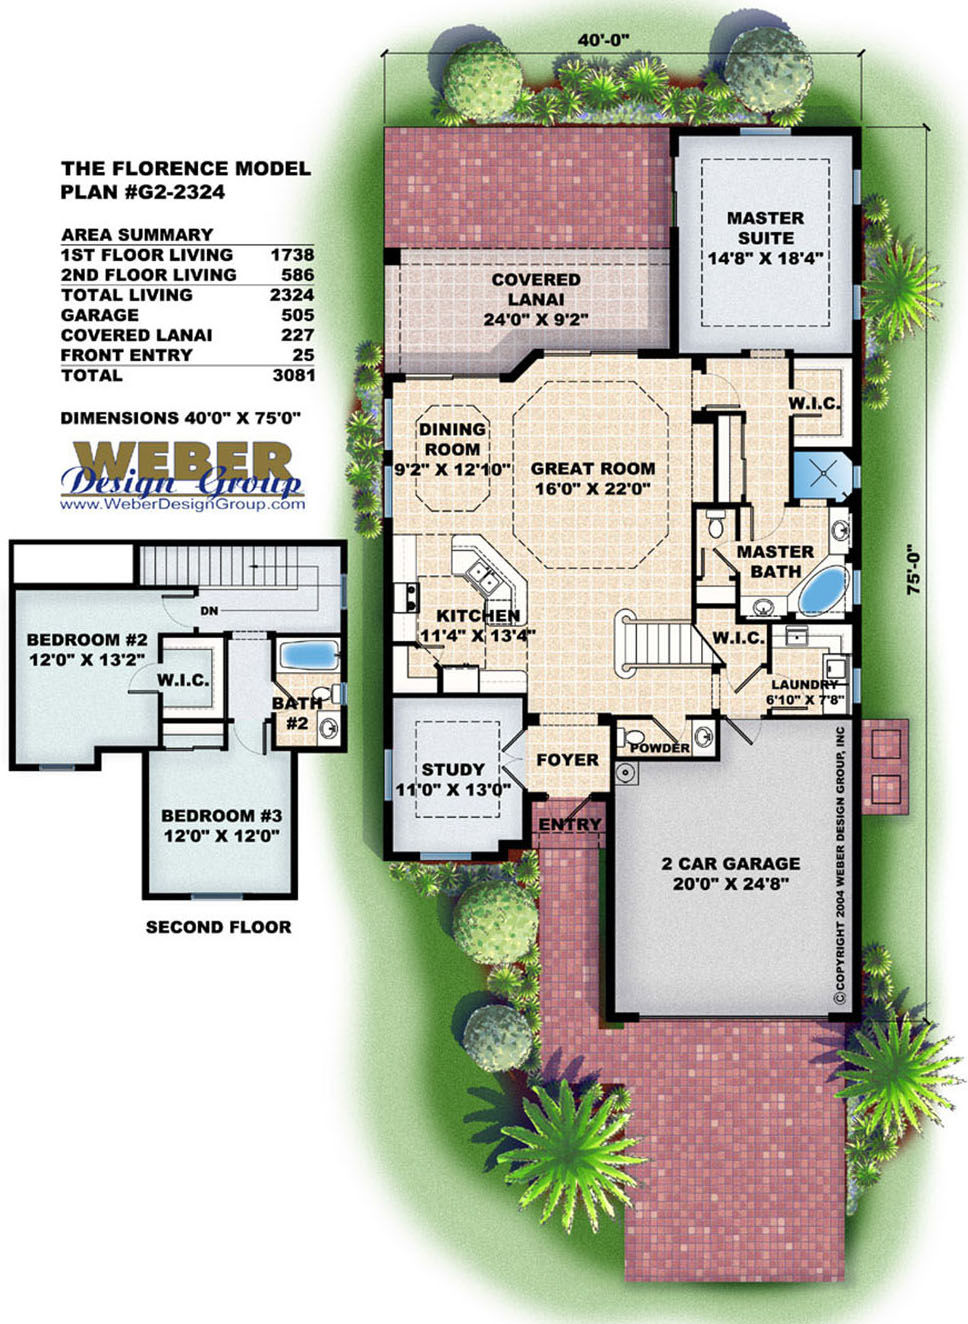 Florence home plan weber design group naples fl for Weber design